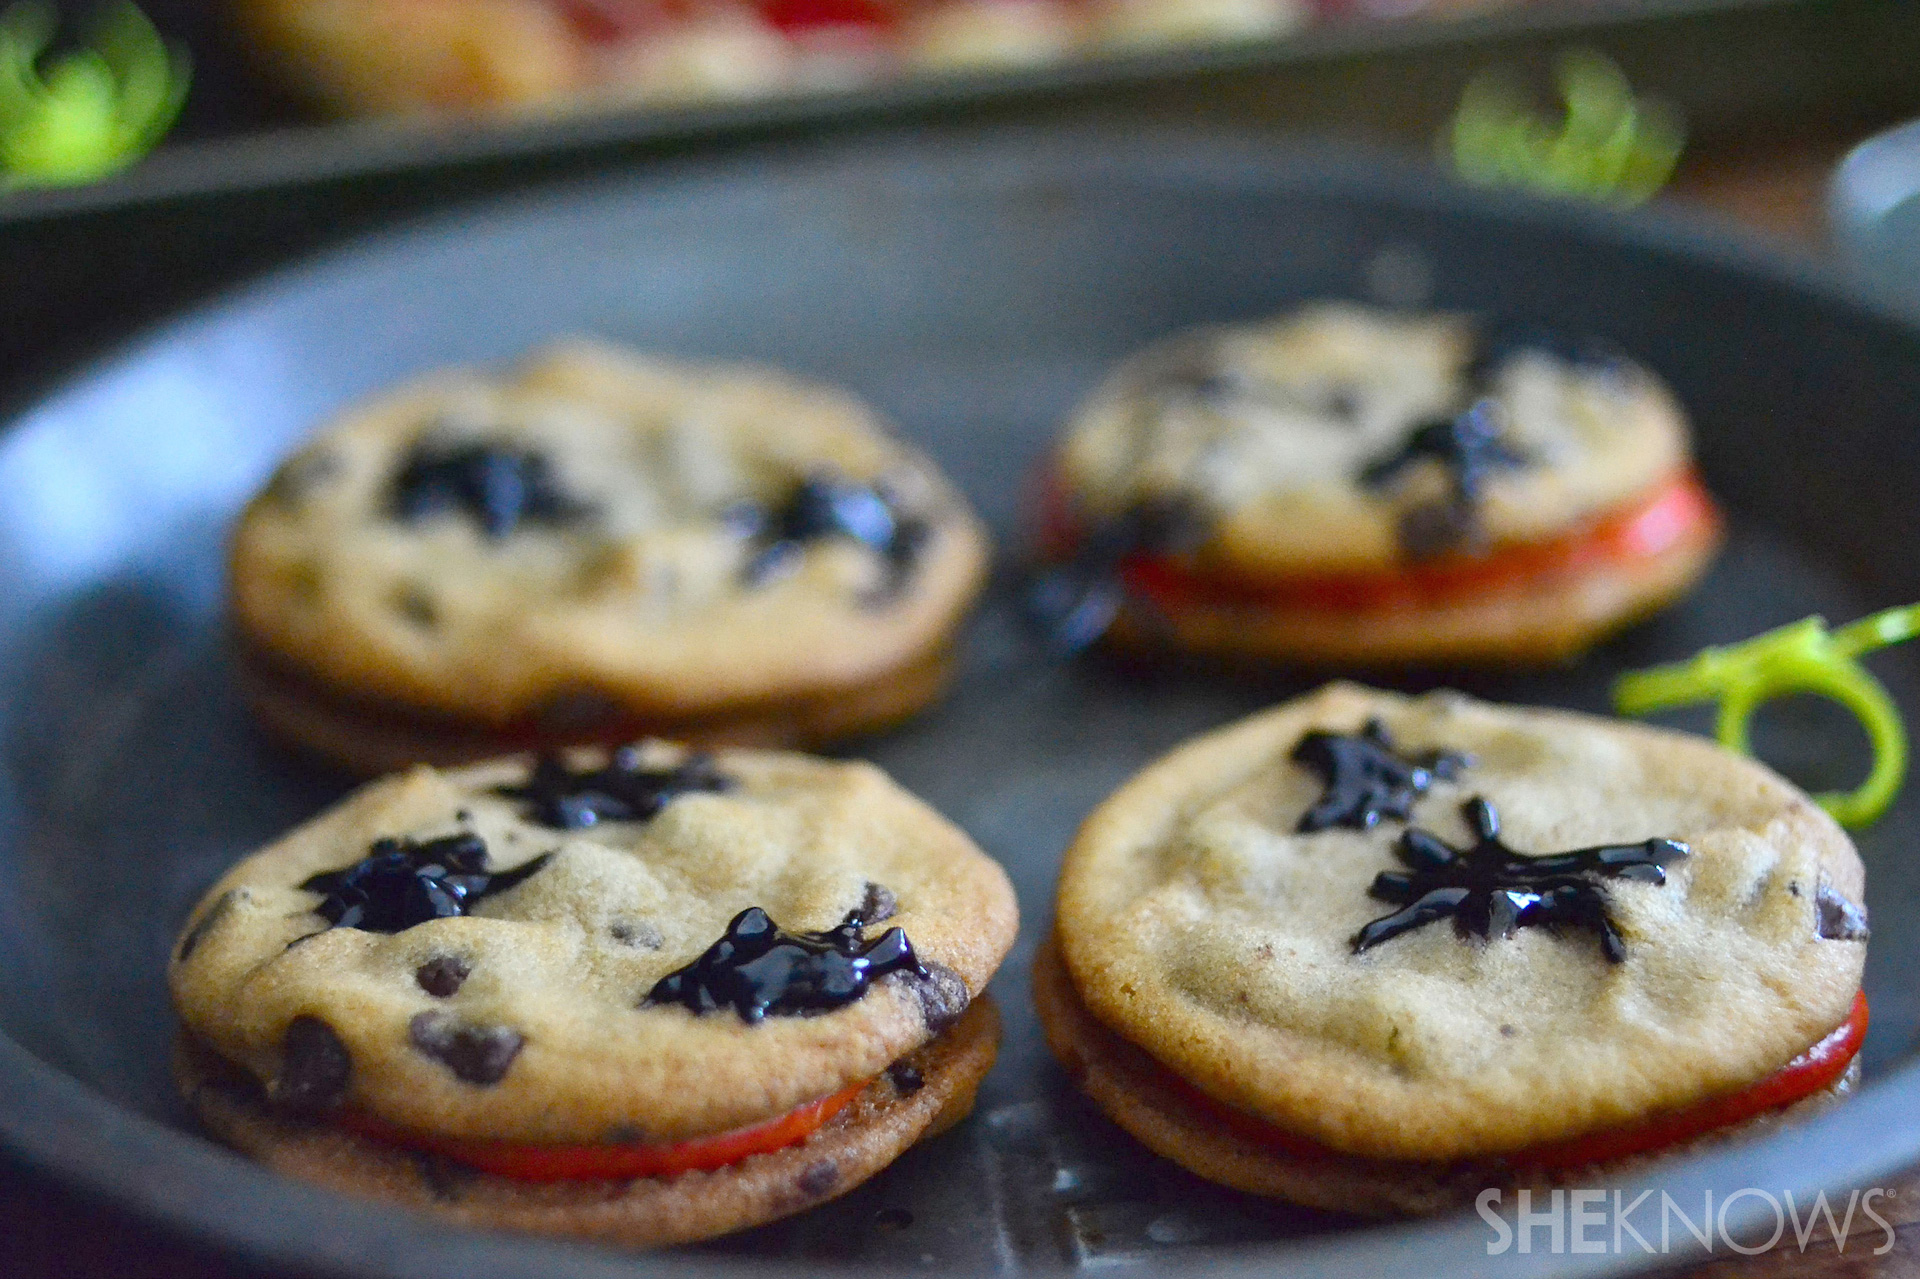 Spider infested cookie sandwiches recipe